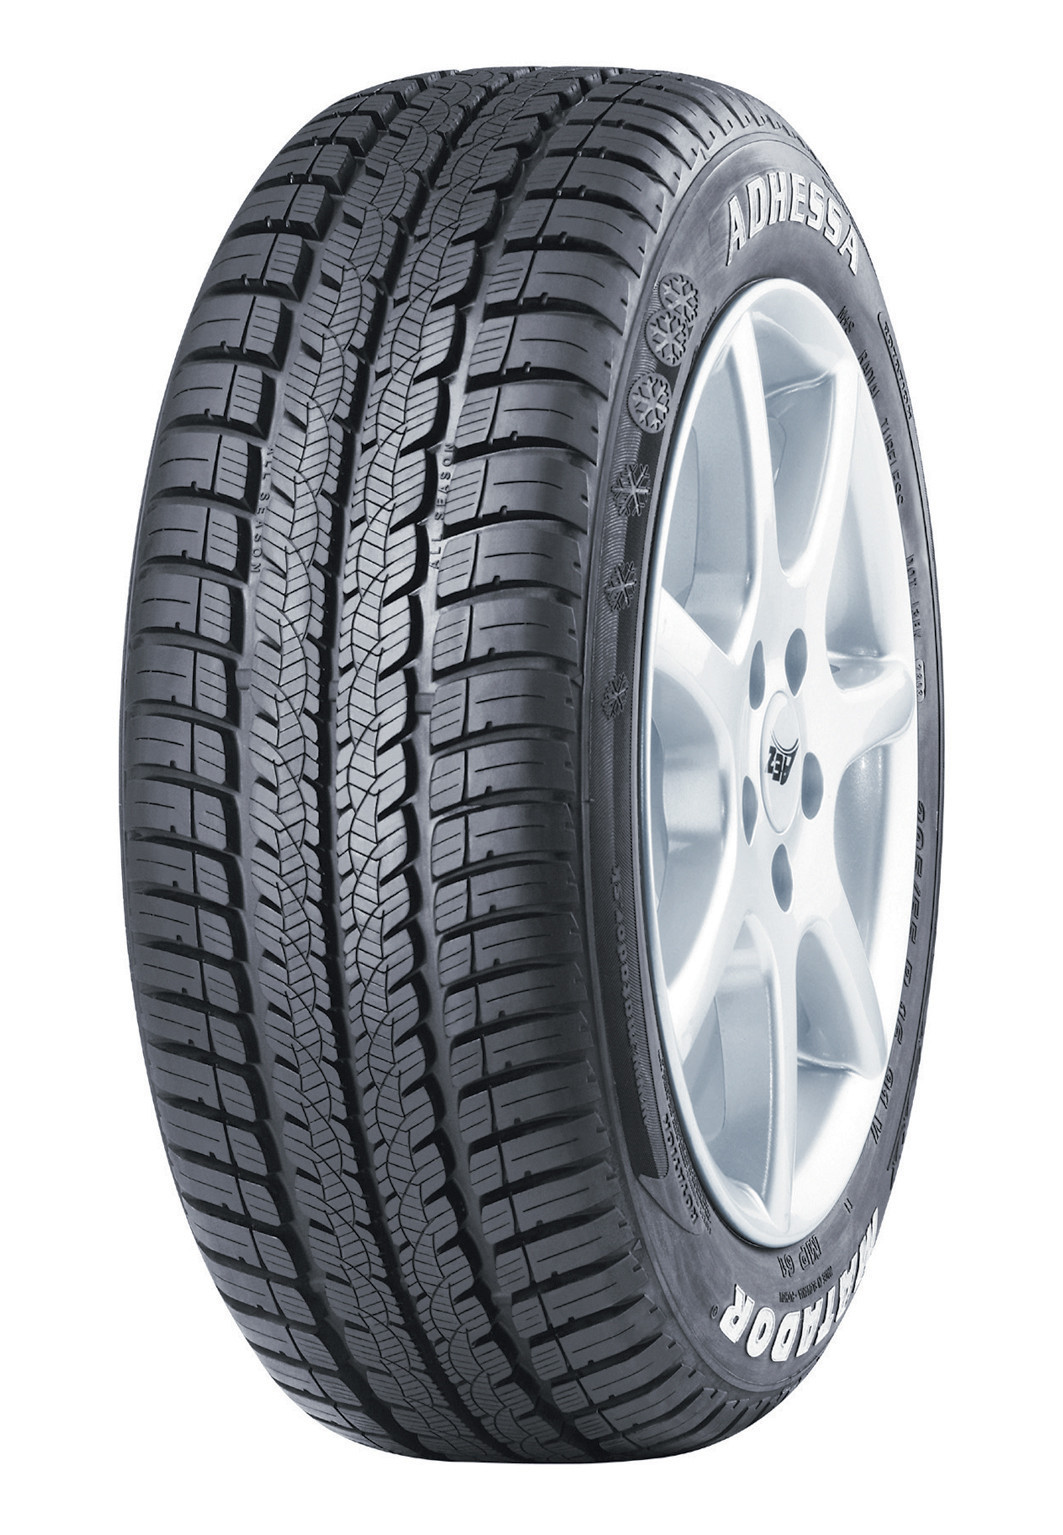 Anvelopa All Season 155/70R13 75T Matador Adhessa Mp61